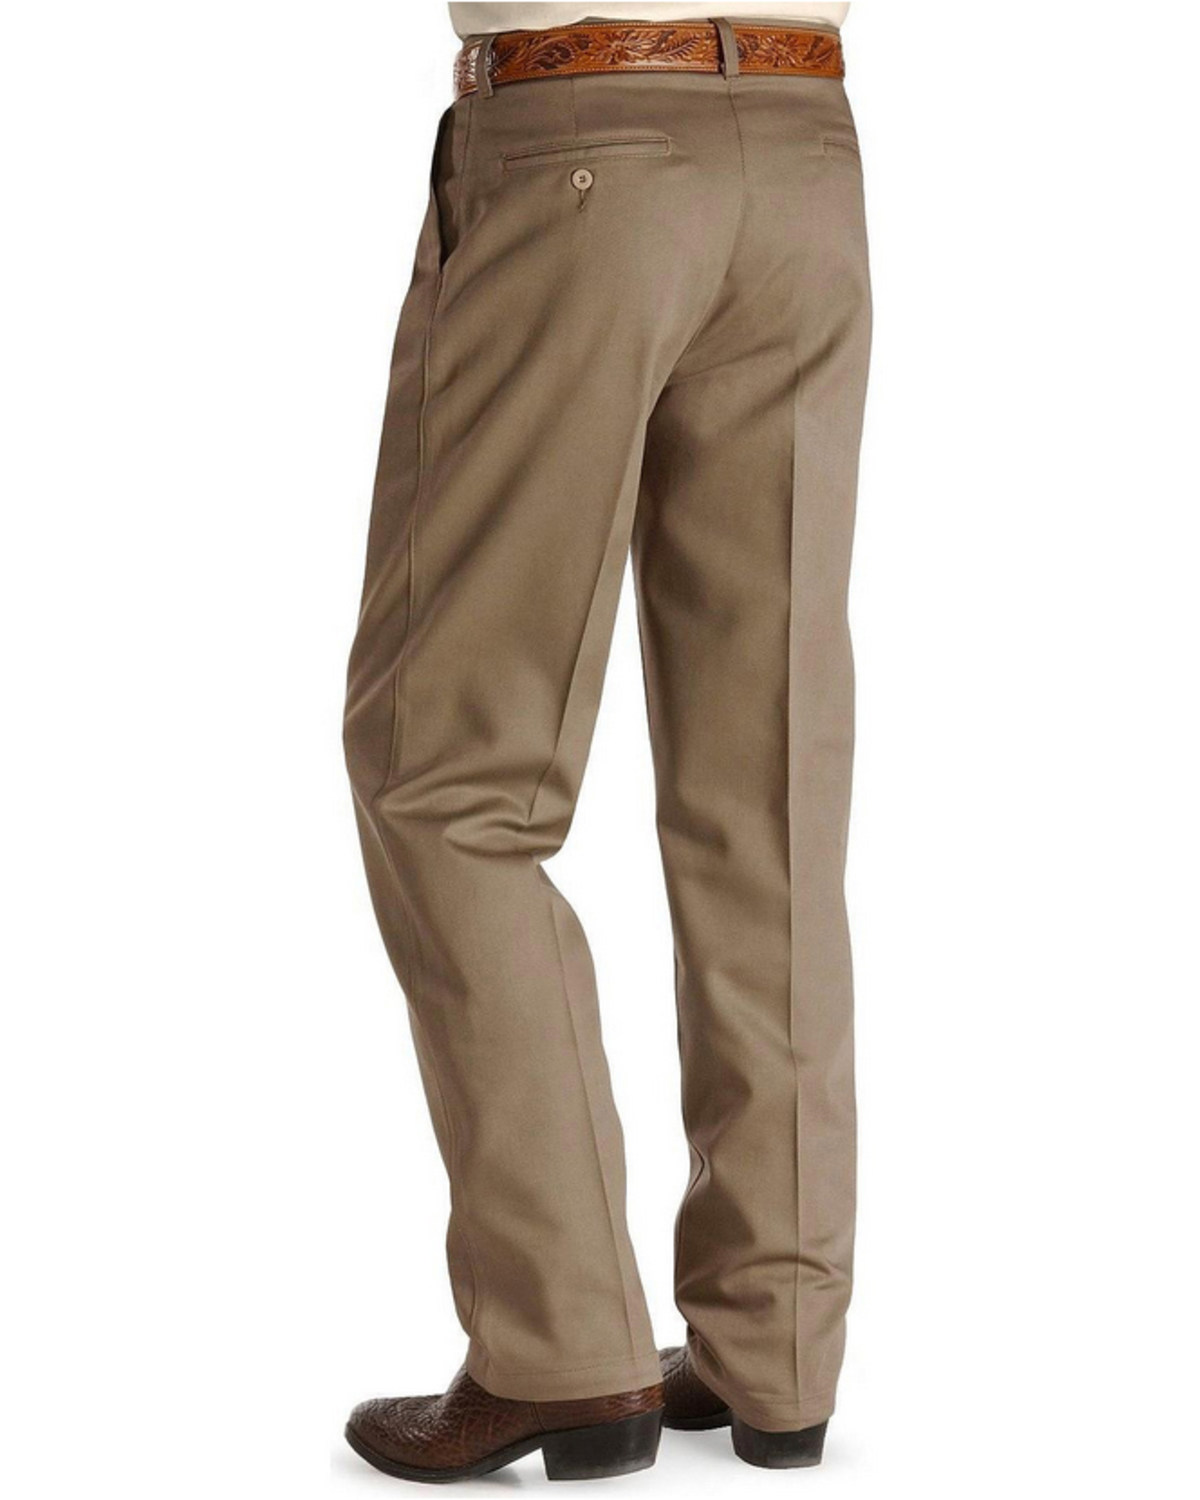 a0a71d64 Zoomed Image Wrangler Slacks - Riata Relaxed Fit, Sable, hi-res